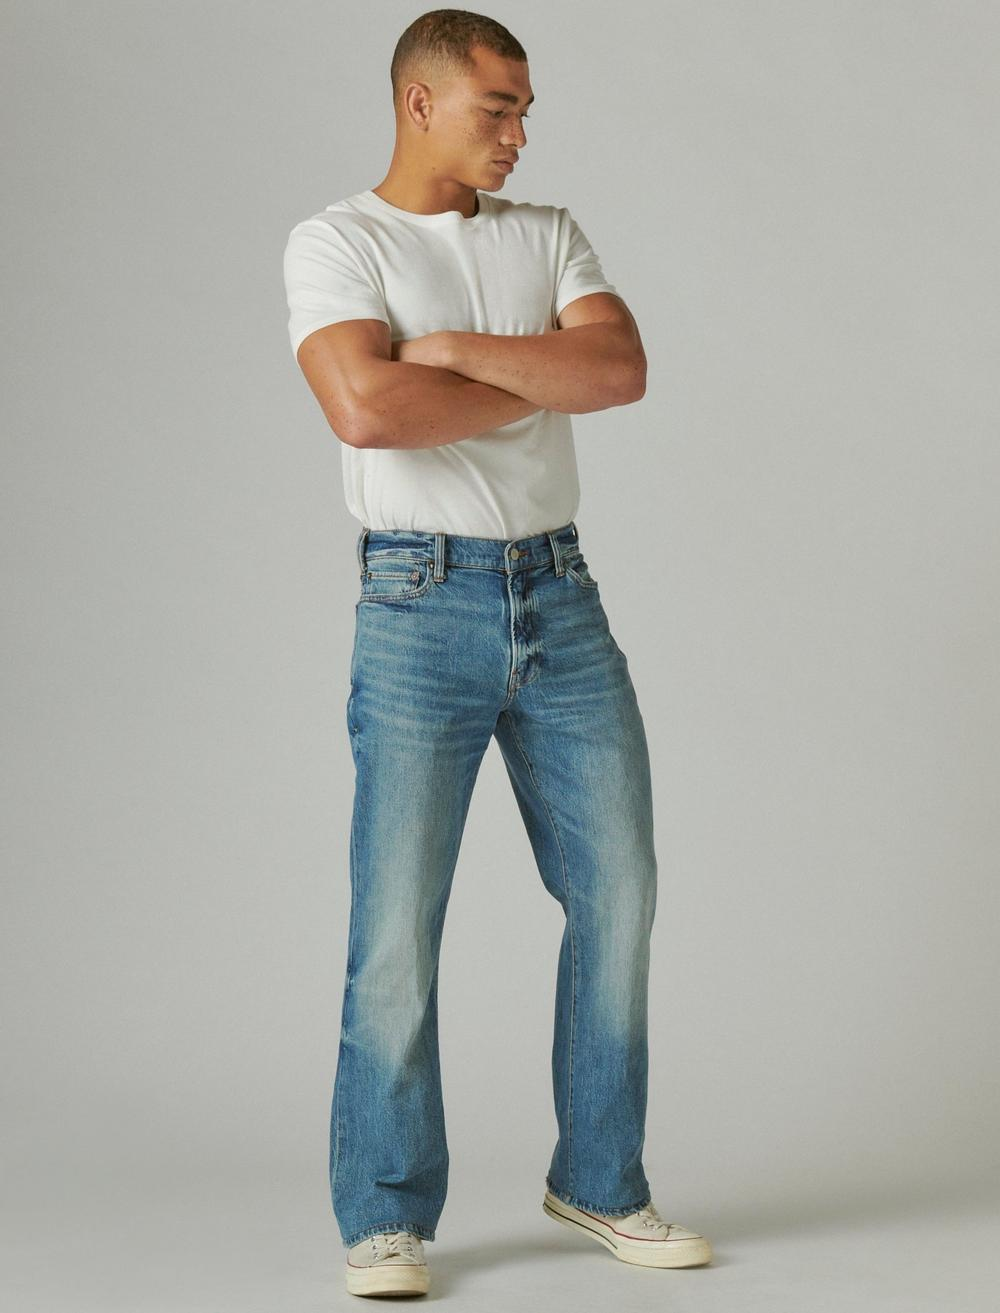 EASY RIDER BOOTCUT JEAN, image 1